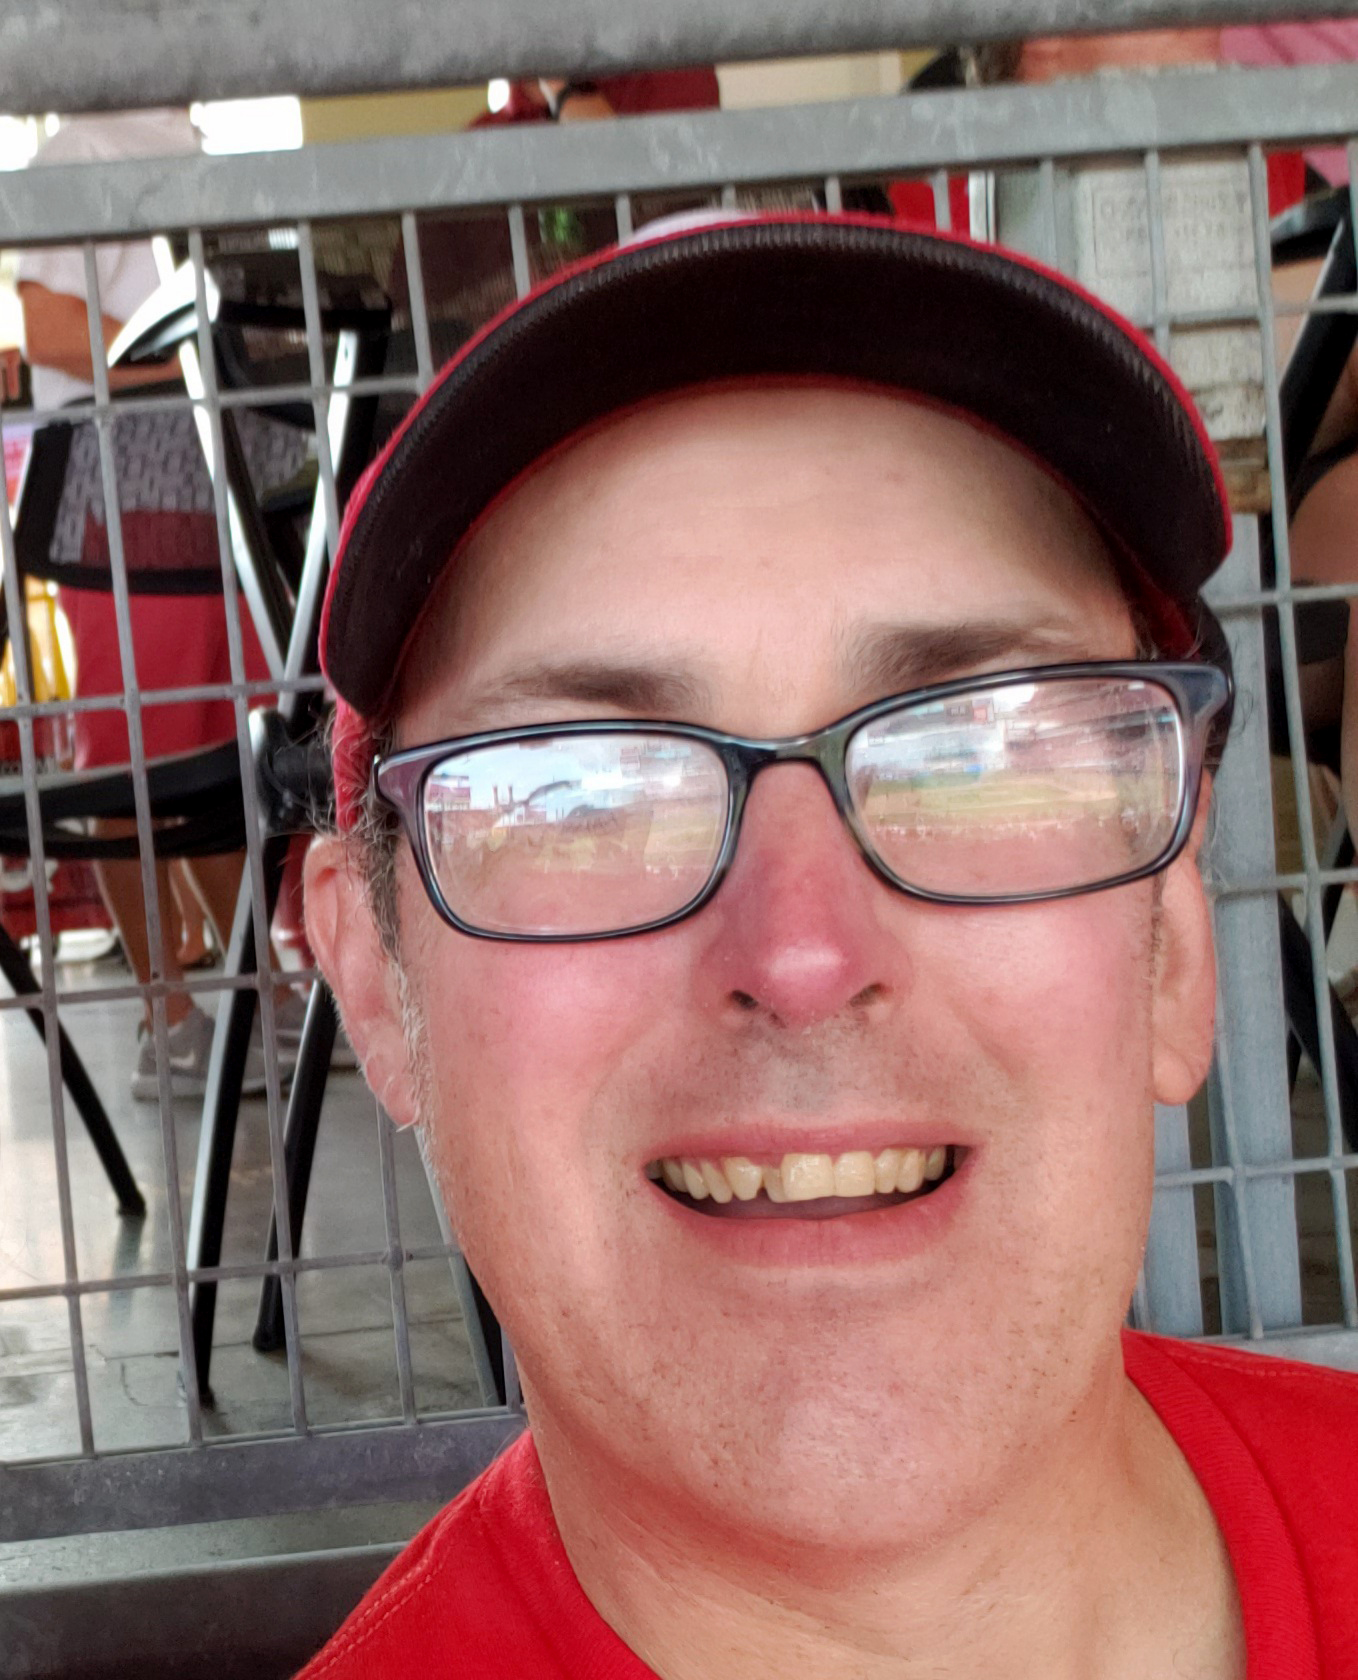 A man with glasses, a red hat, and a red shirt smiles